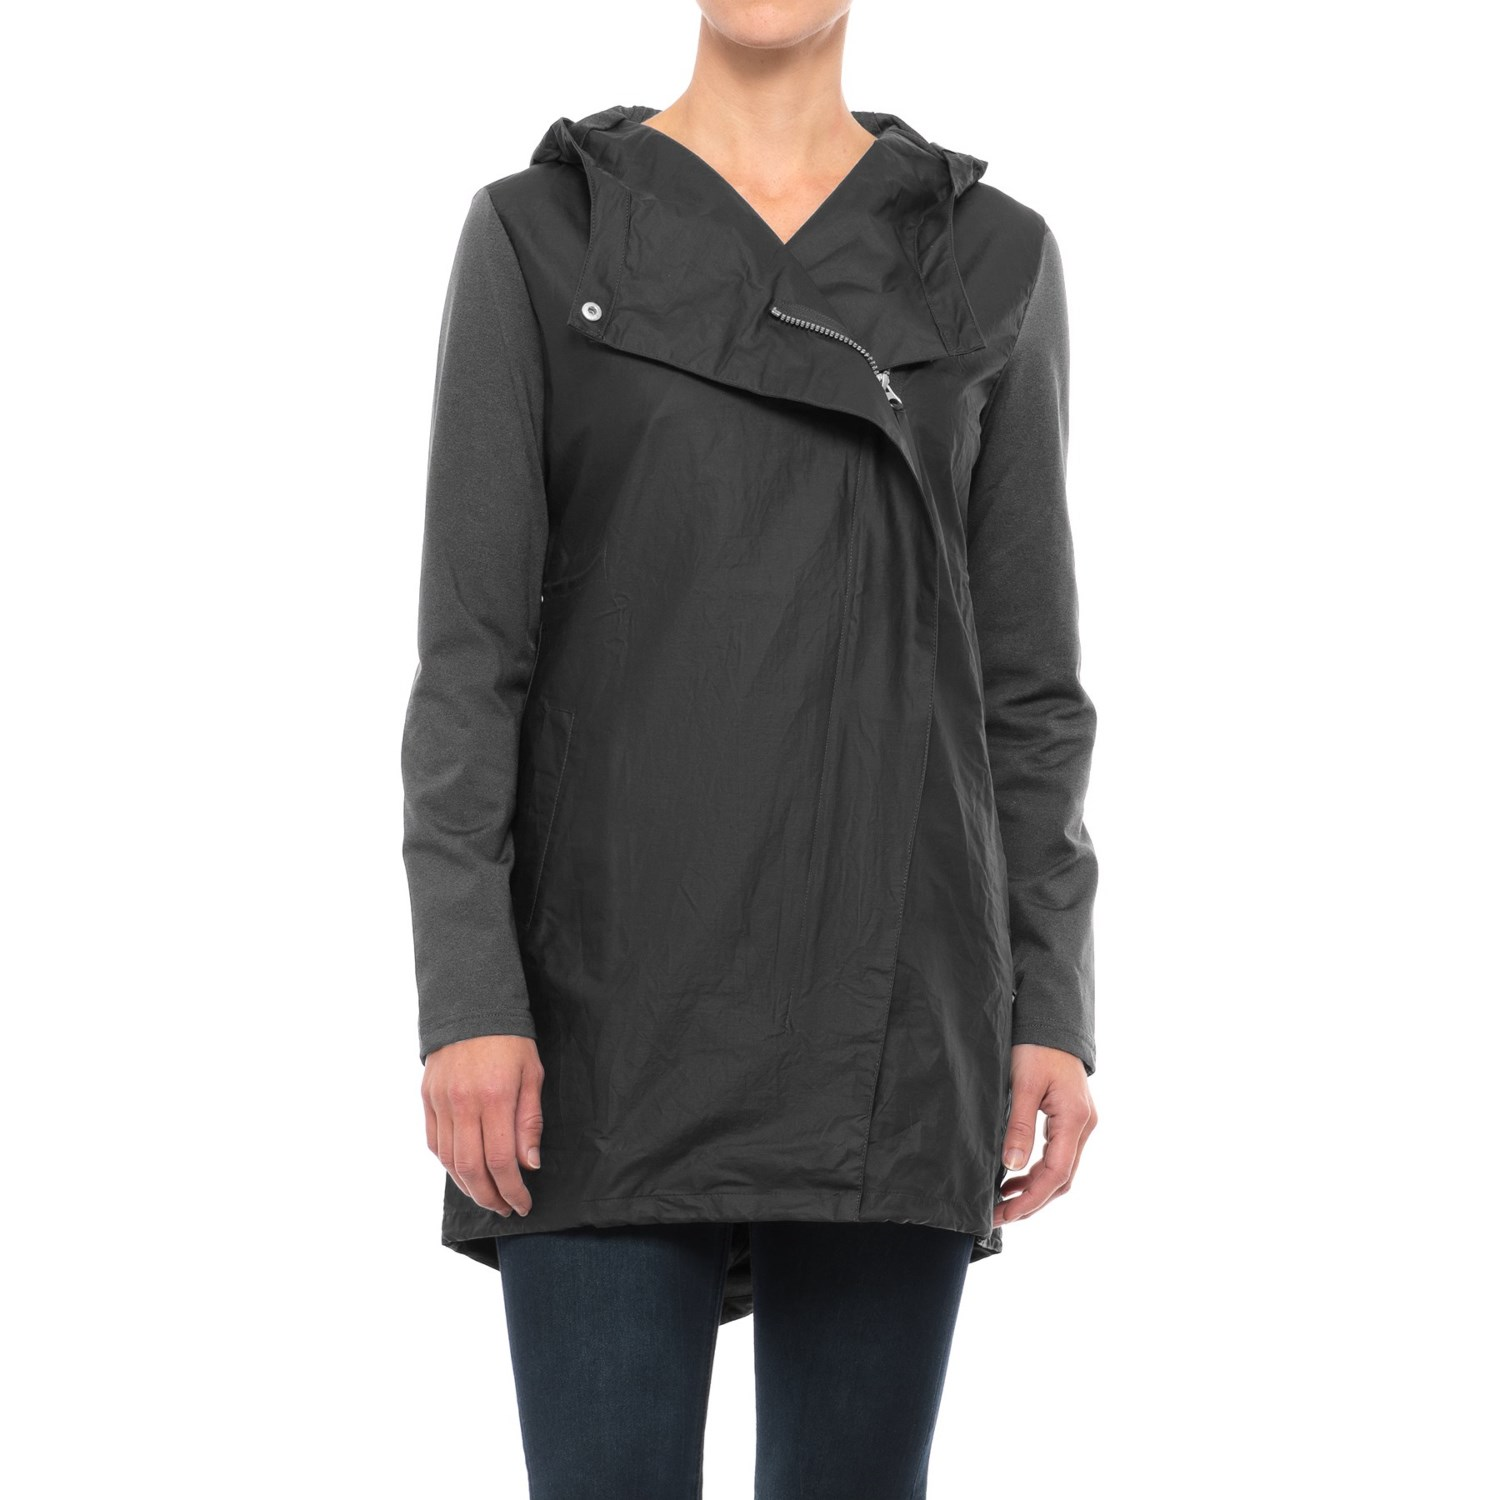 Mondetta Average Savings Of 52 At Sierra Trading Post Andrew Smith Grey Formal Trousers Abu 34 Mixed Media Anorak Jacket For Women In Black Closeouts